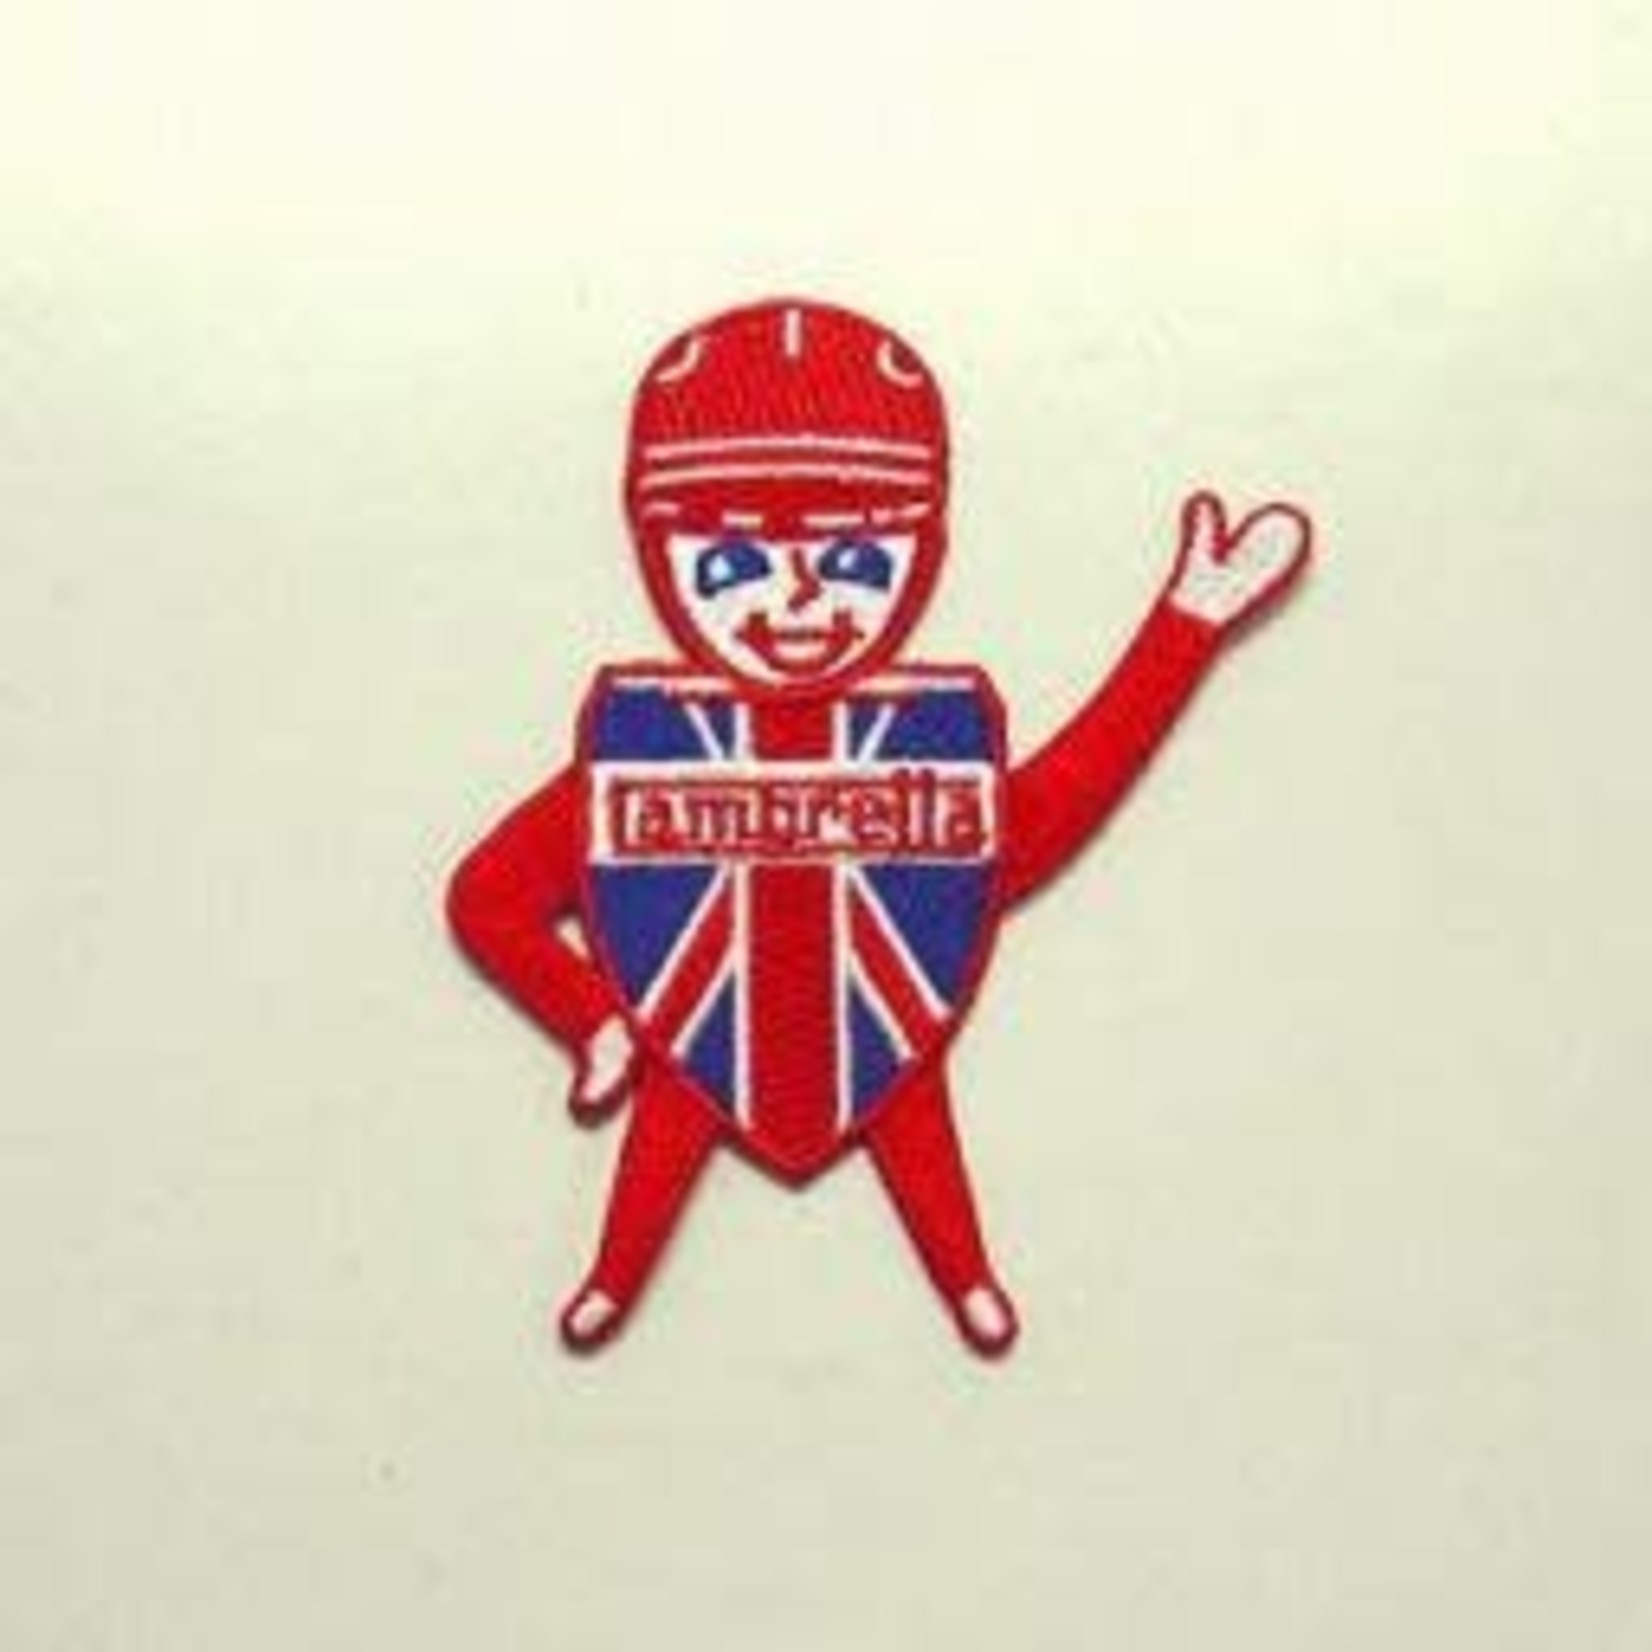 Lifestyle Patch, Lambretta Man